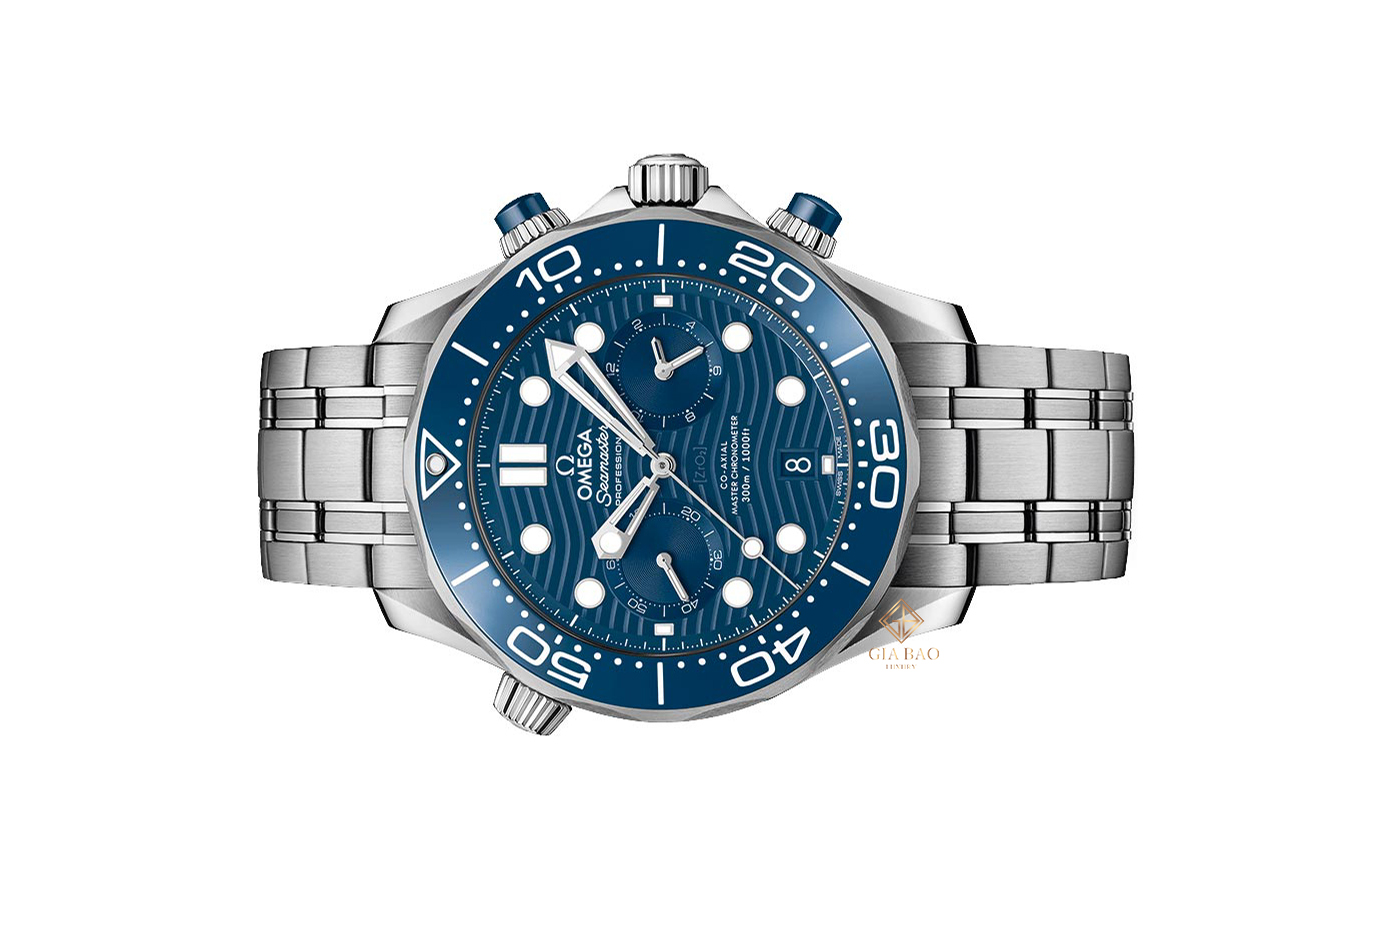 Đồng Hồ Omega Seamaster Collection 210.30.44.51.03.001